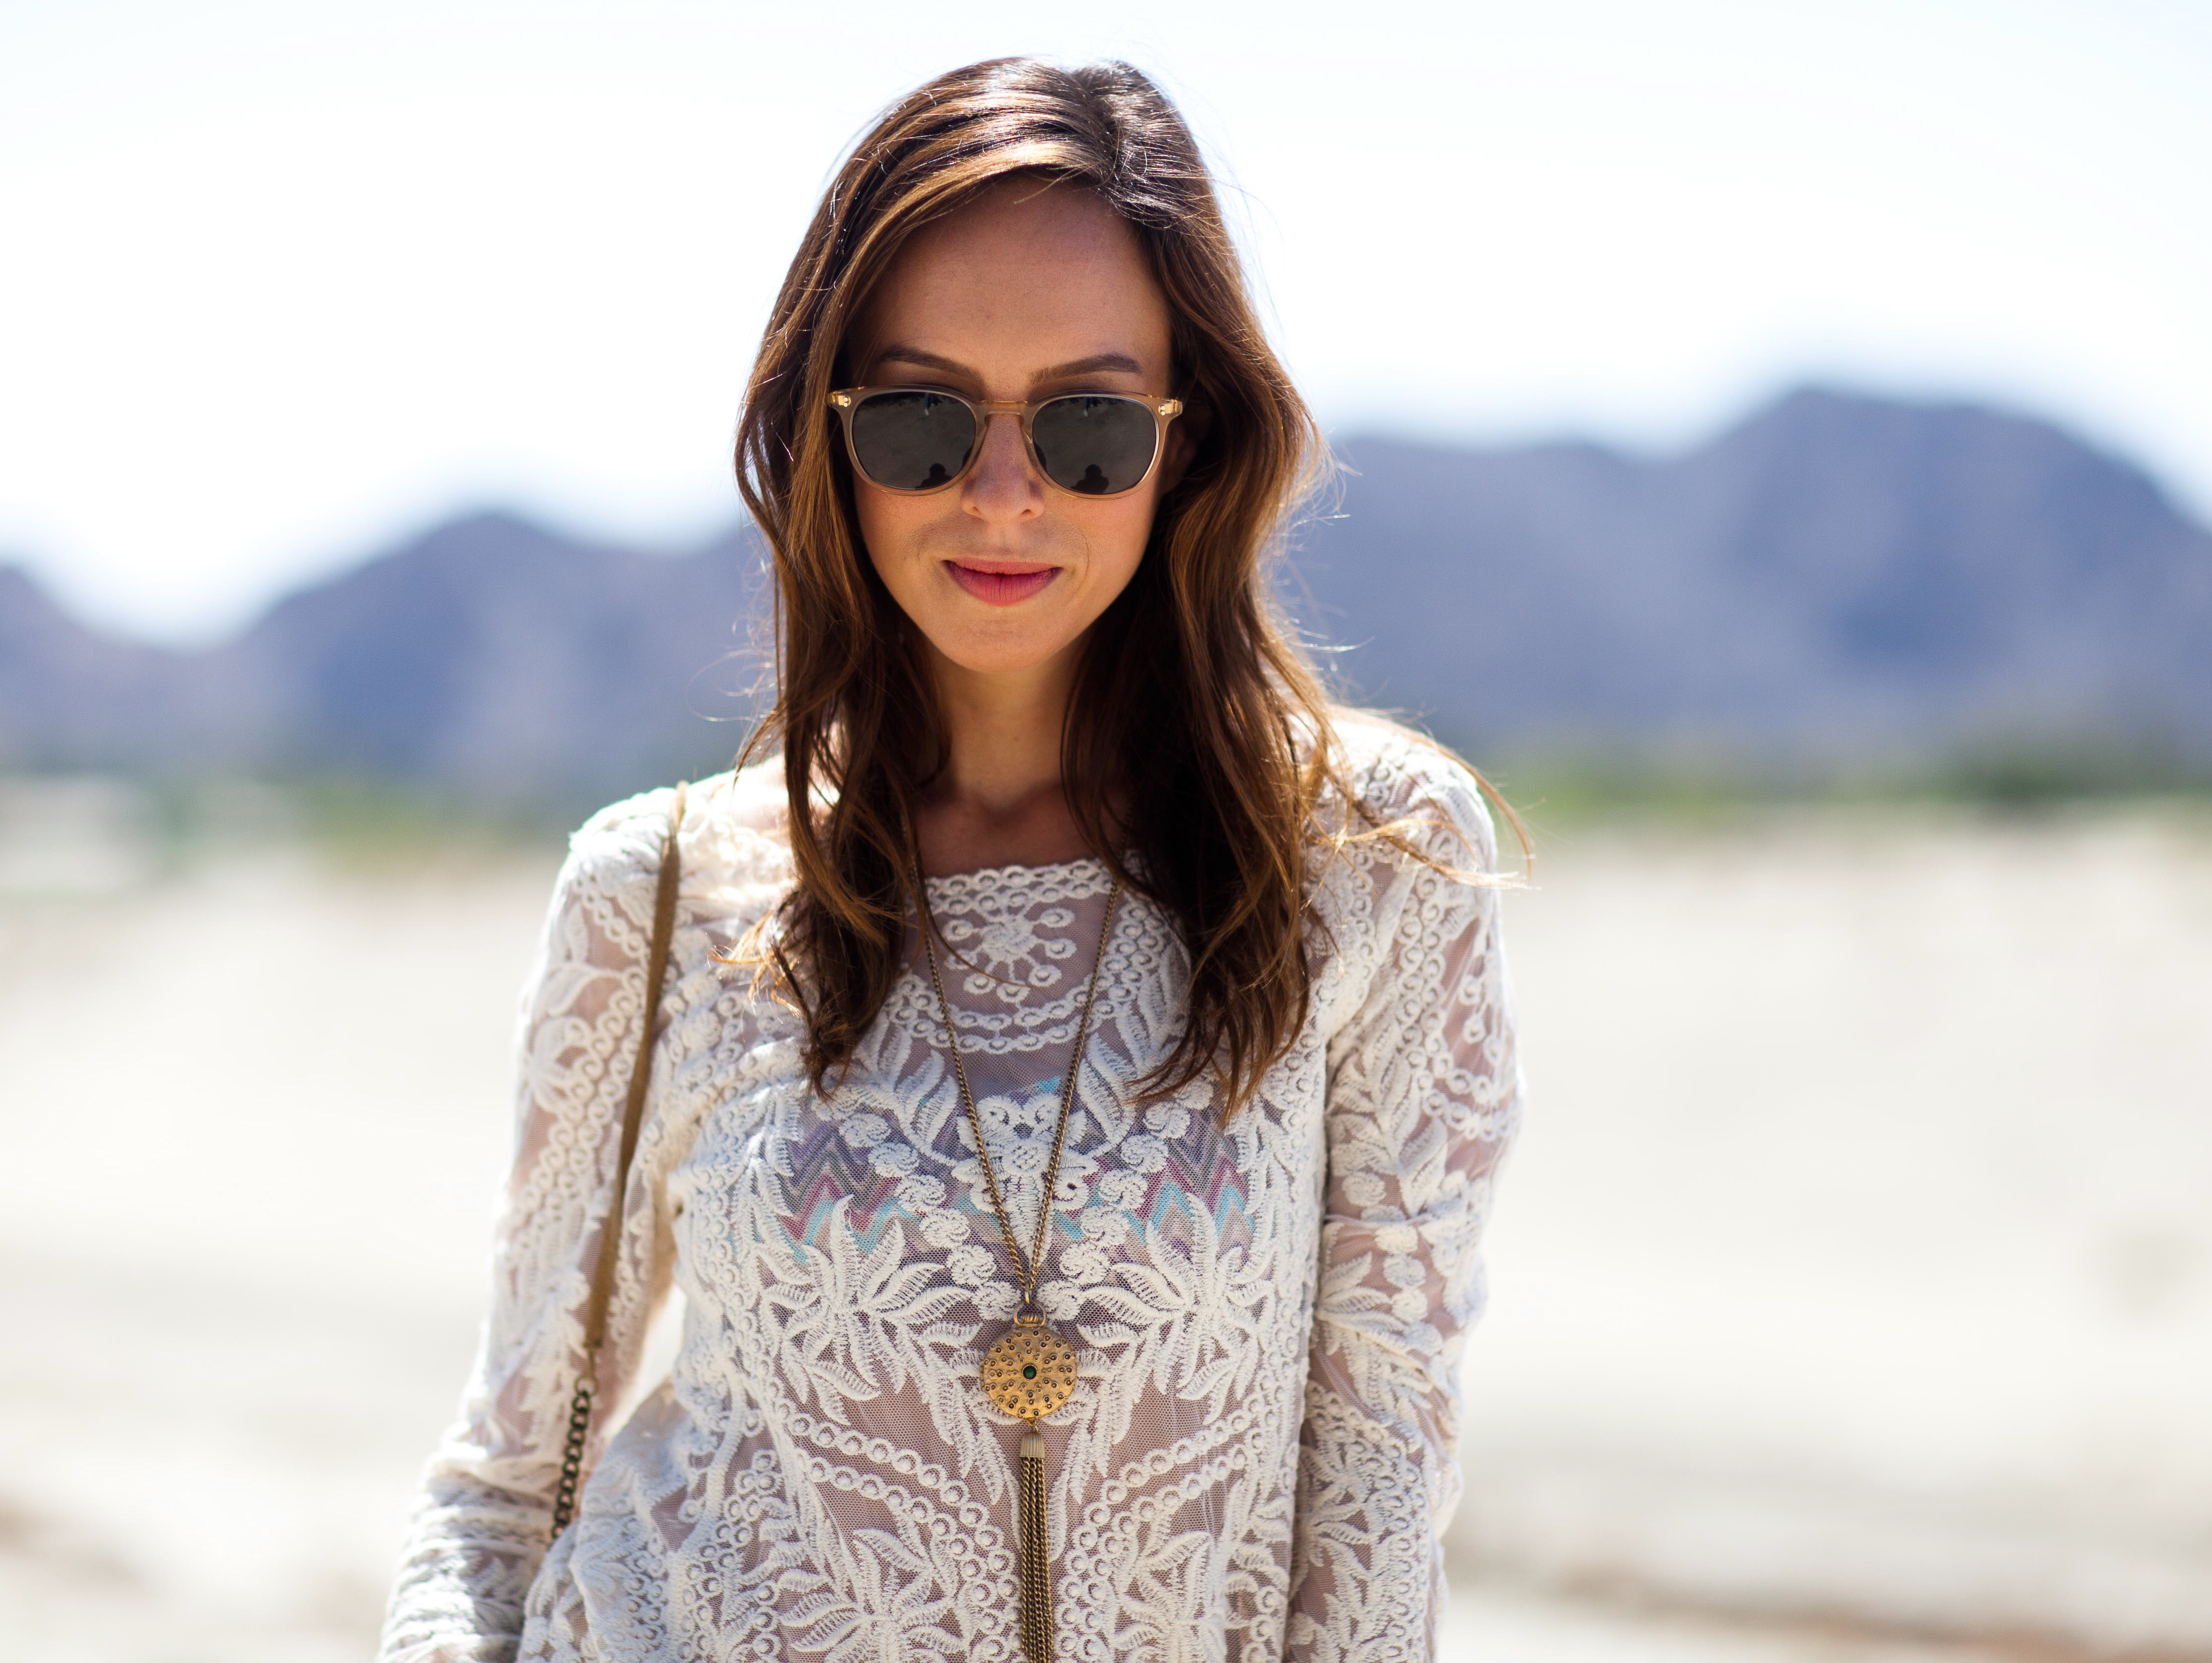 Coachella-Street-Style-Festival-Fashion-Express-lace-top-Citizens-of-Humanity-yellow-shorts-UGG-Australia-woven-wedge-locket-necklace-Garrett-Leight-sunglasses-hippie-chic-sheer